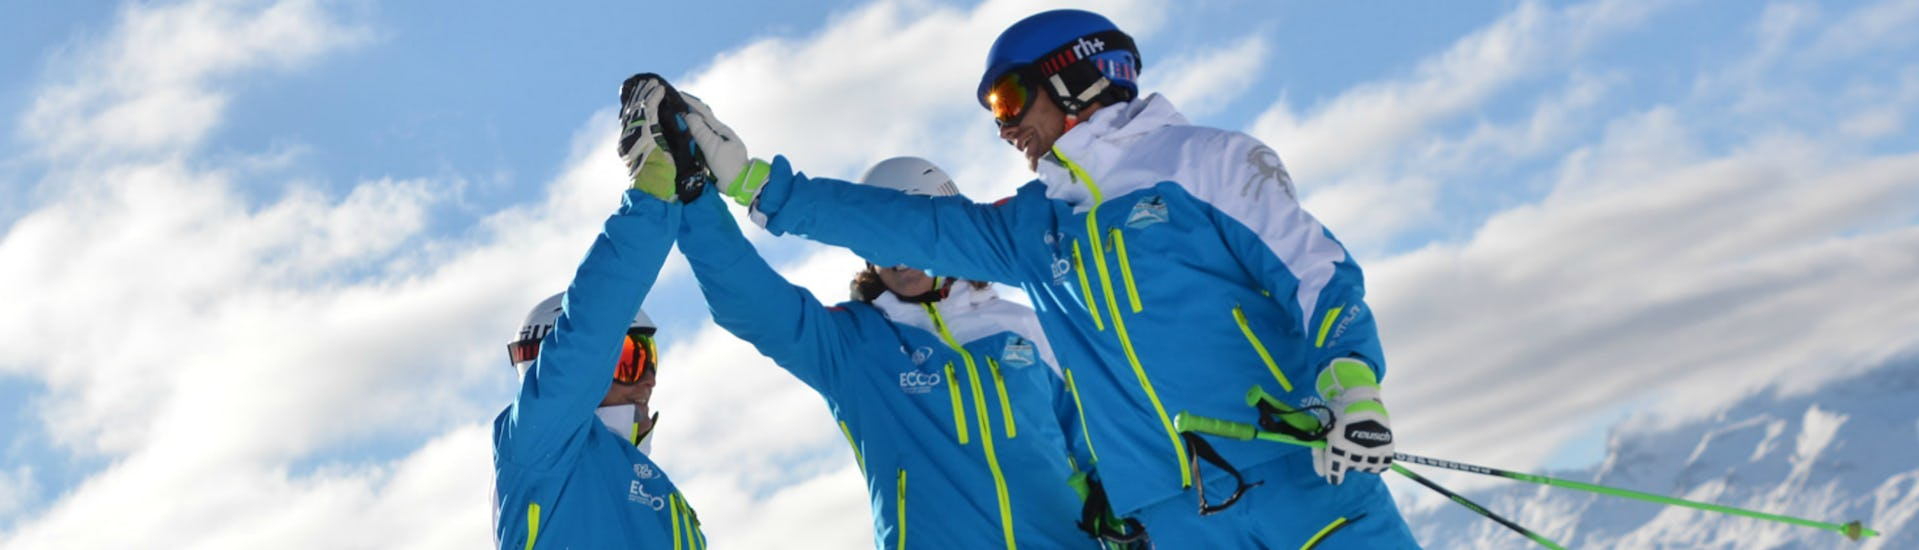 Ski Lessons for Teens (12-17 years) - All Levels